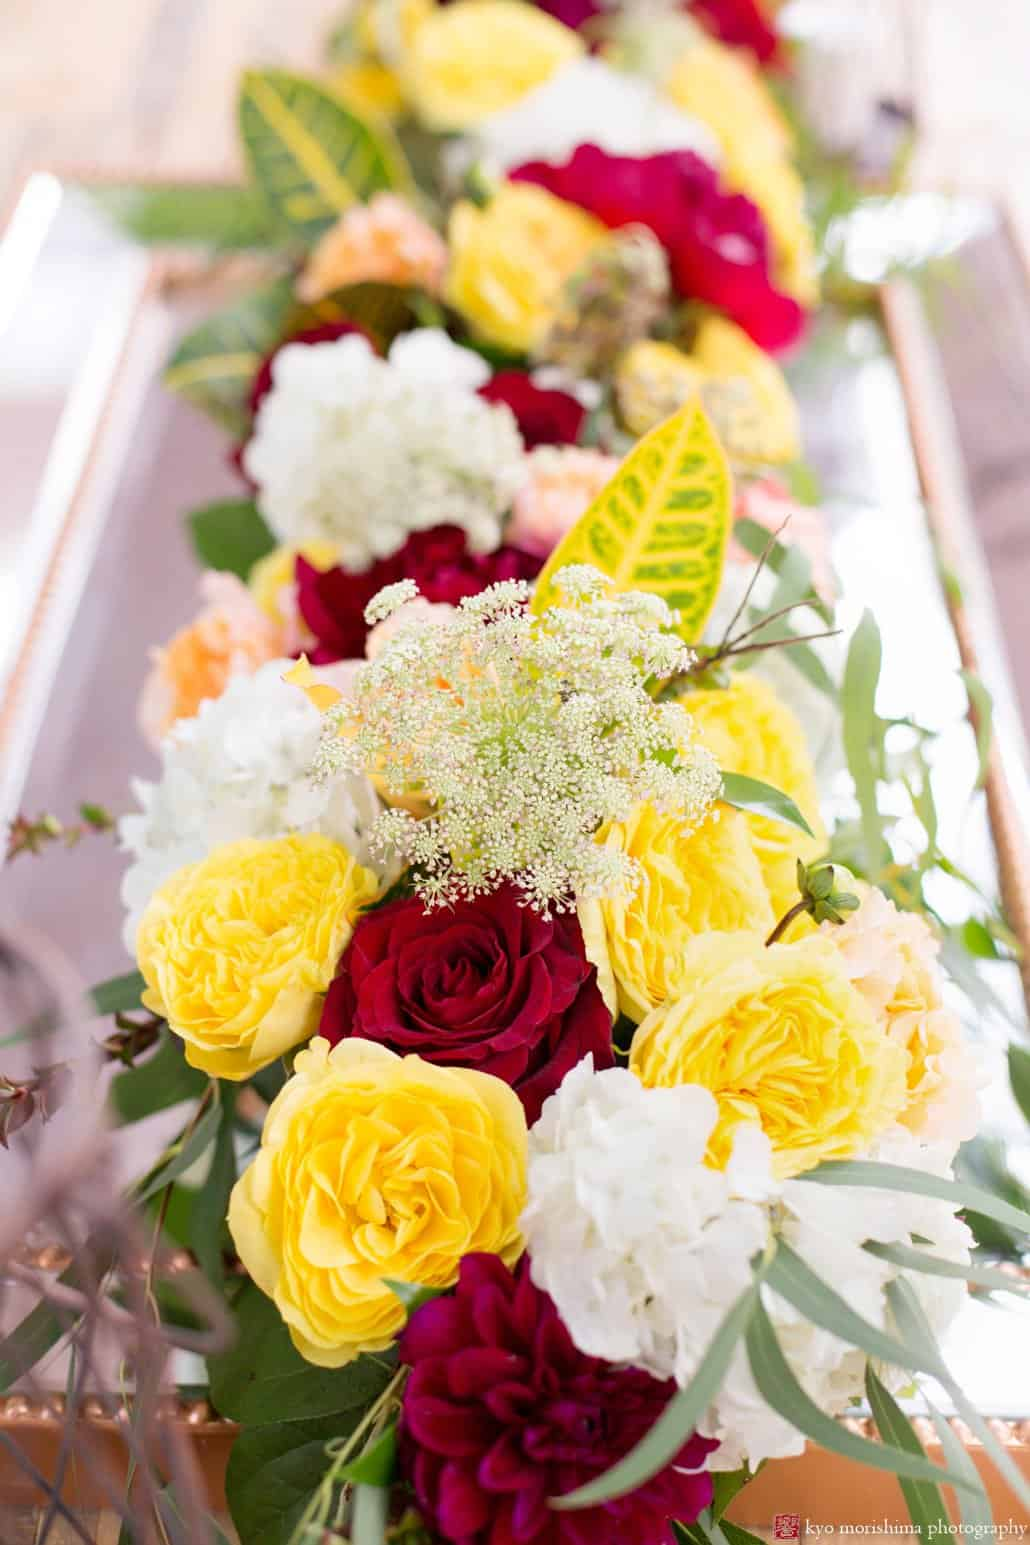 Maroon, gold, and white flower tabletop centerpiece by Kristin Rockhill of Details of I do, photographed by Kyo Morishima